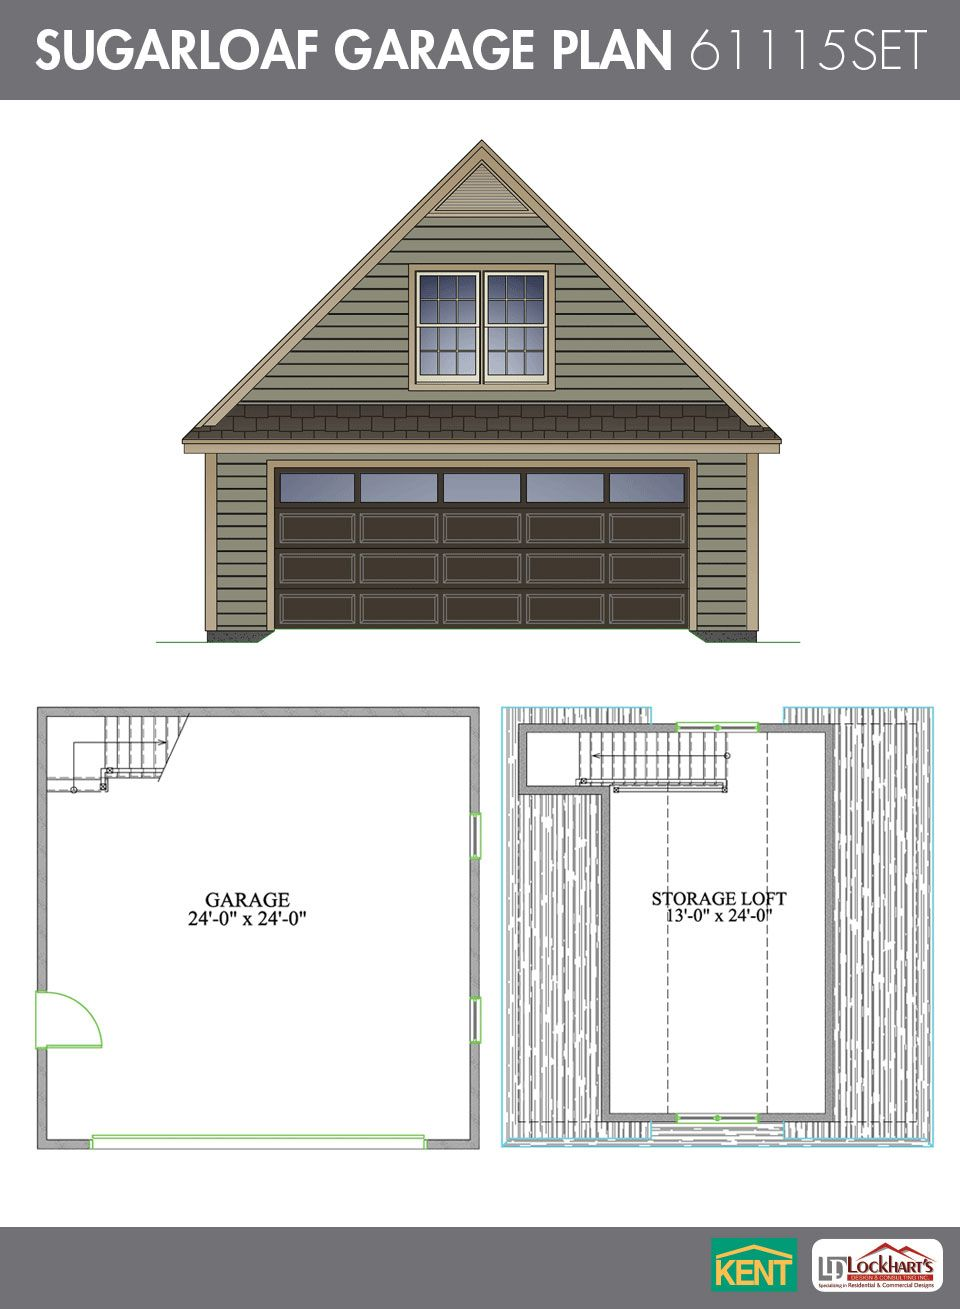 Sugarloaf garage plan 26 39 x 28 39 2 car garage 378 sq ft for Free garage plans online